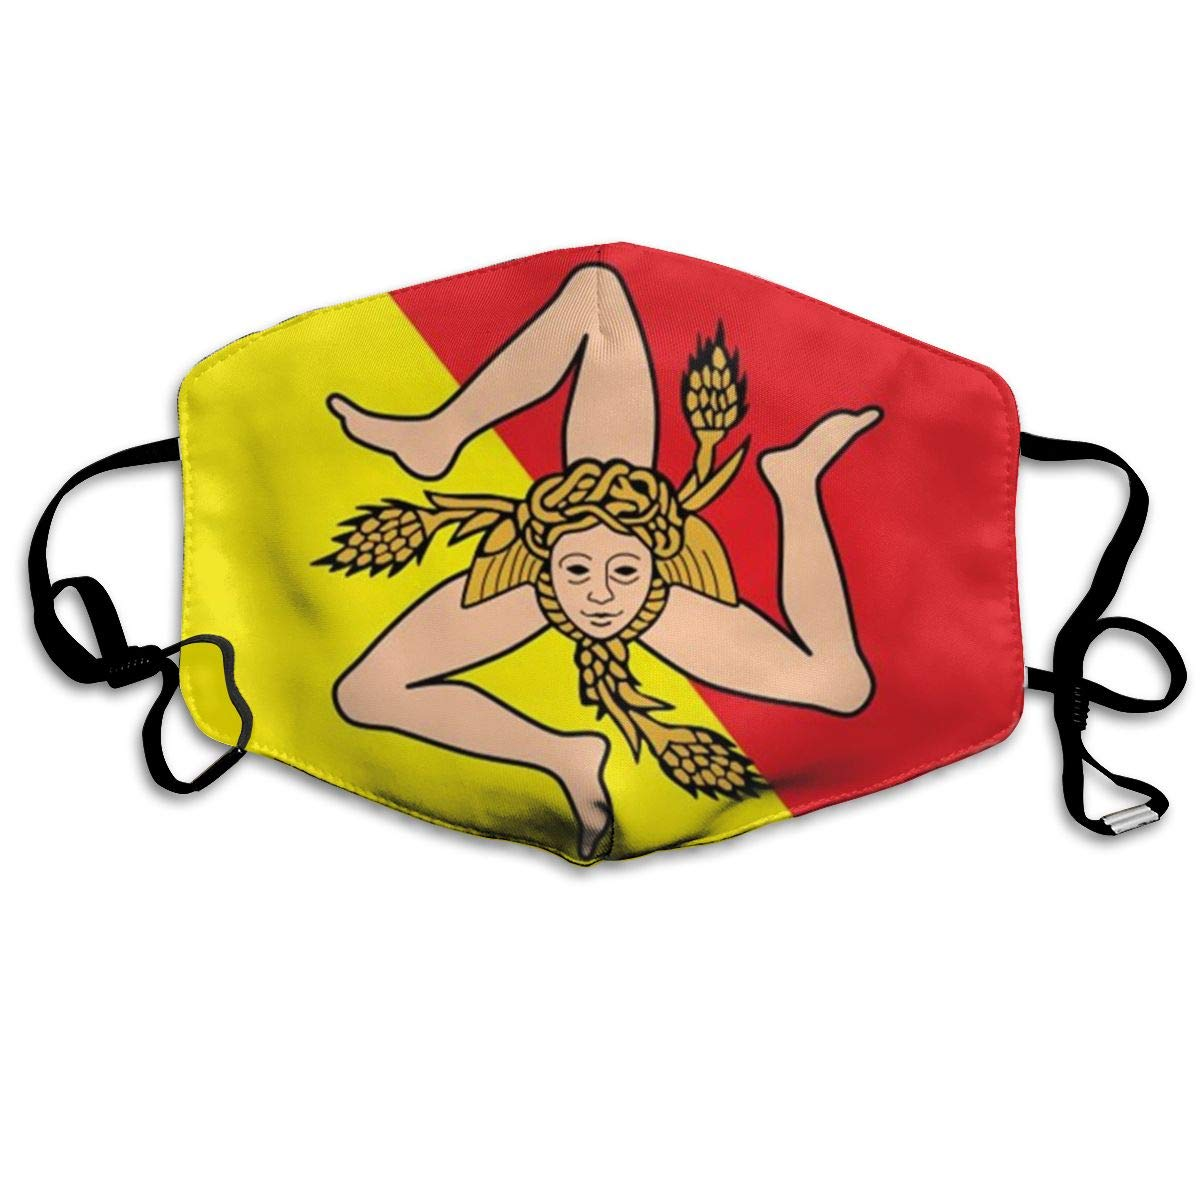 Breathable Anti Dust Mouth Mask With Adjustable Earloop, Warm Windproof Reusable Washable Half Face Mask, Sicily Flag